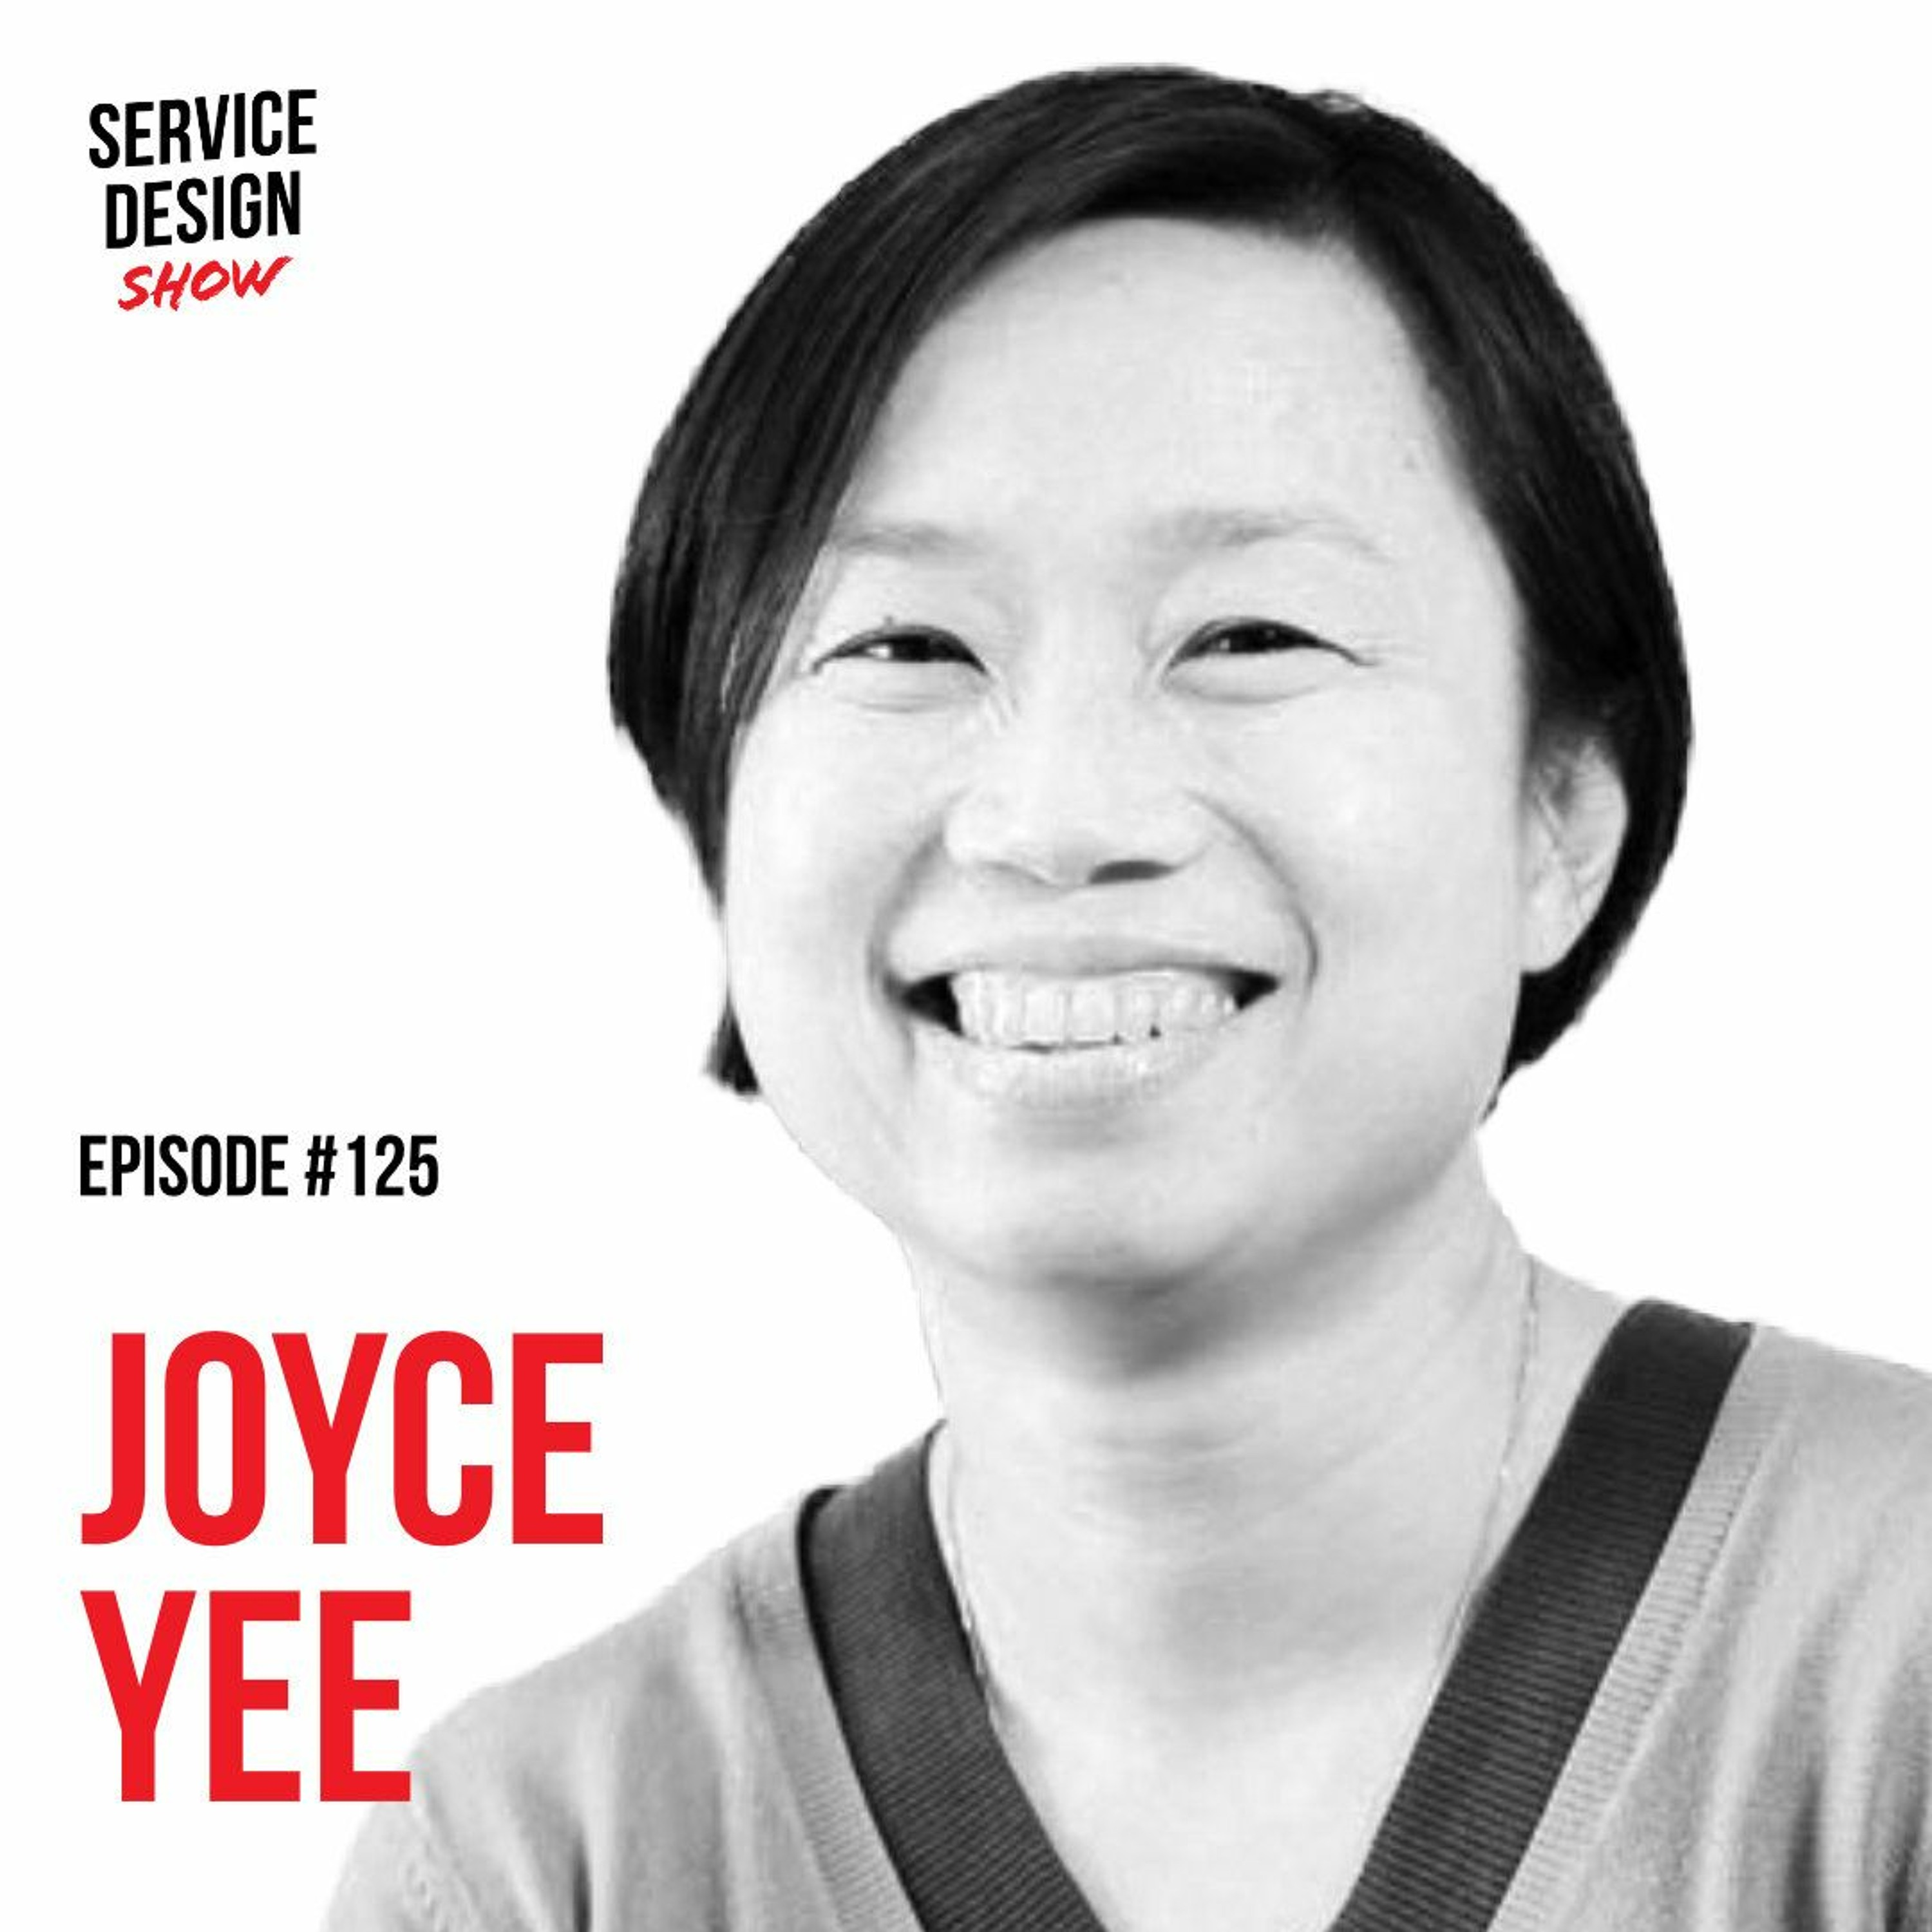 How to meaningfully evaluate the impact of service design / Joyce Yee / Episode #125